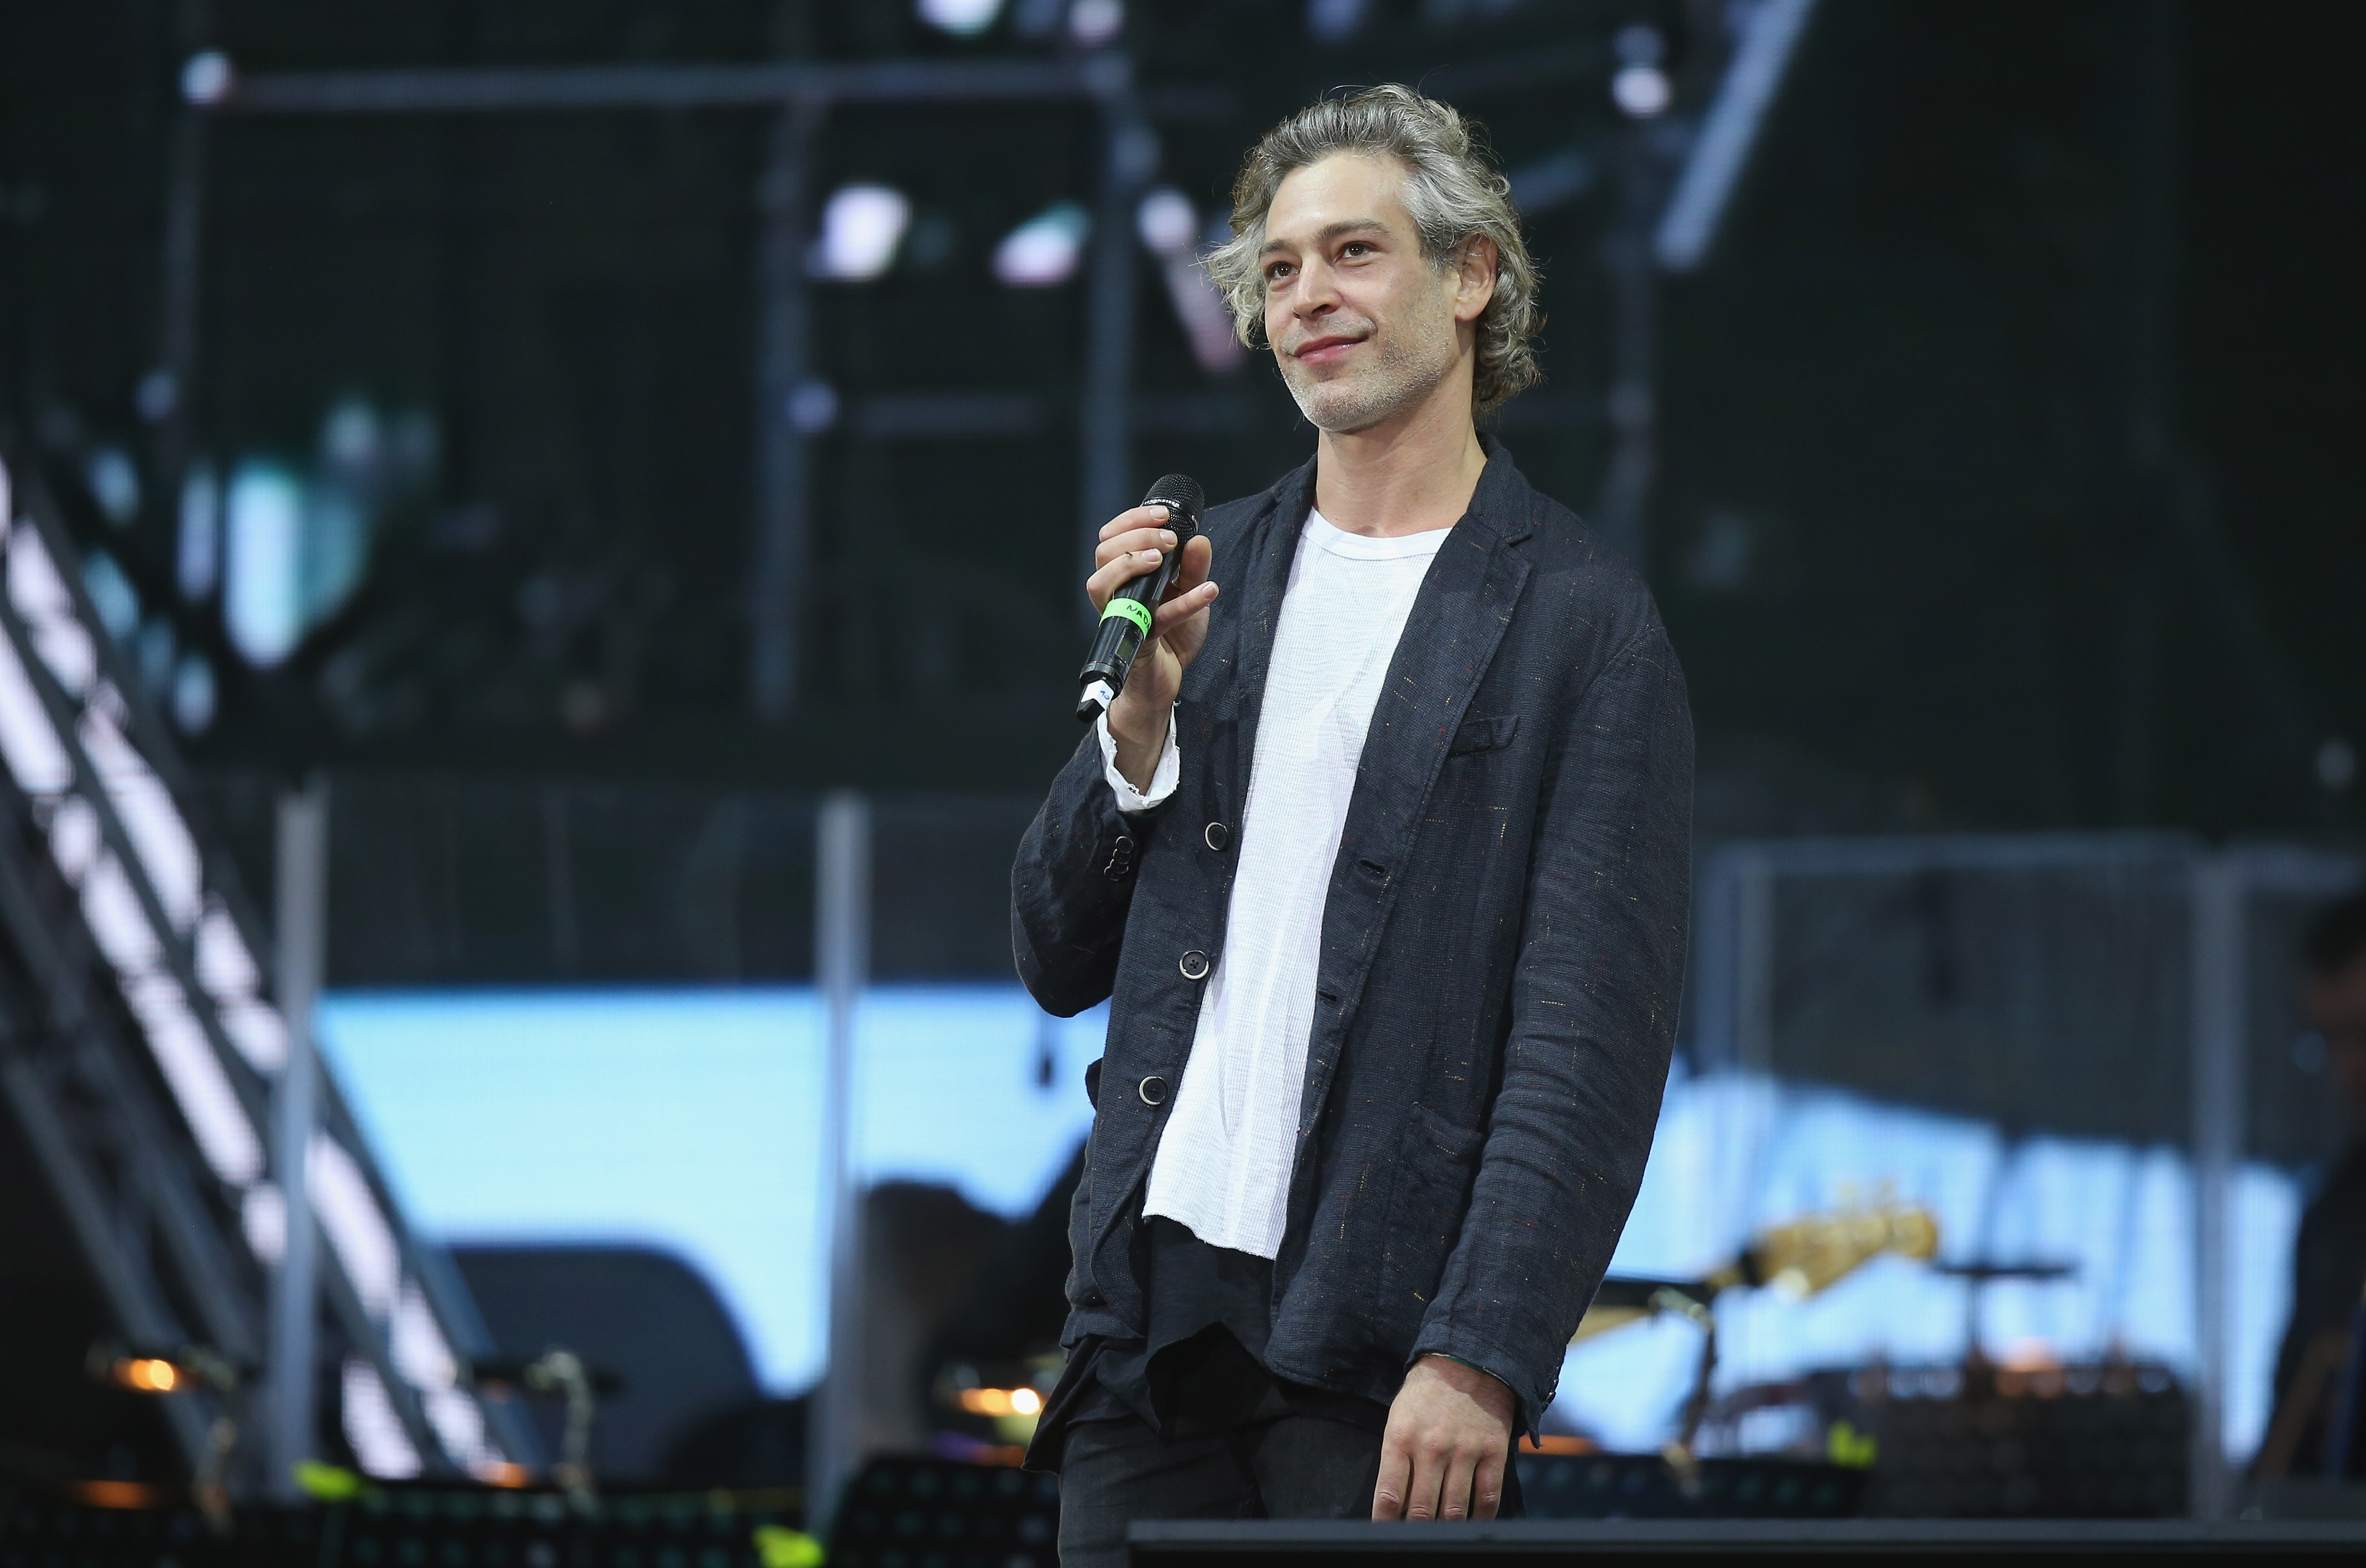 Singer Matisyahu performs at the official opening ceremony of the European Maccabi Games at the Waldbuehne in Berlin on July 28, 2015.